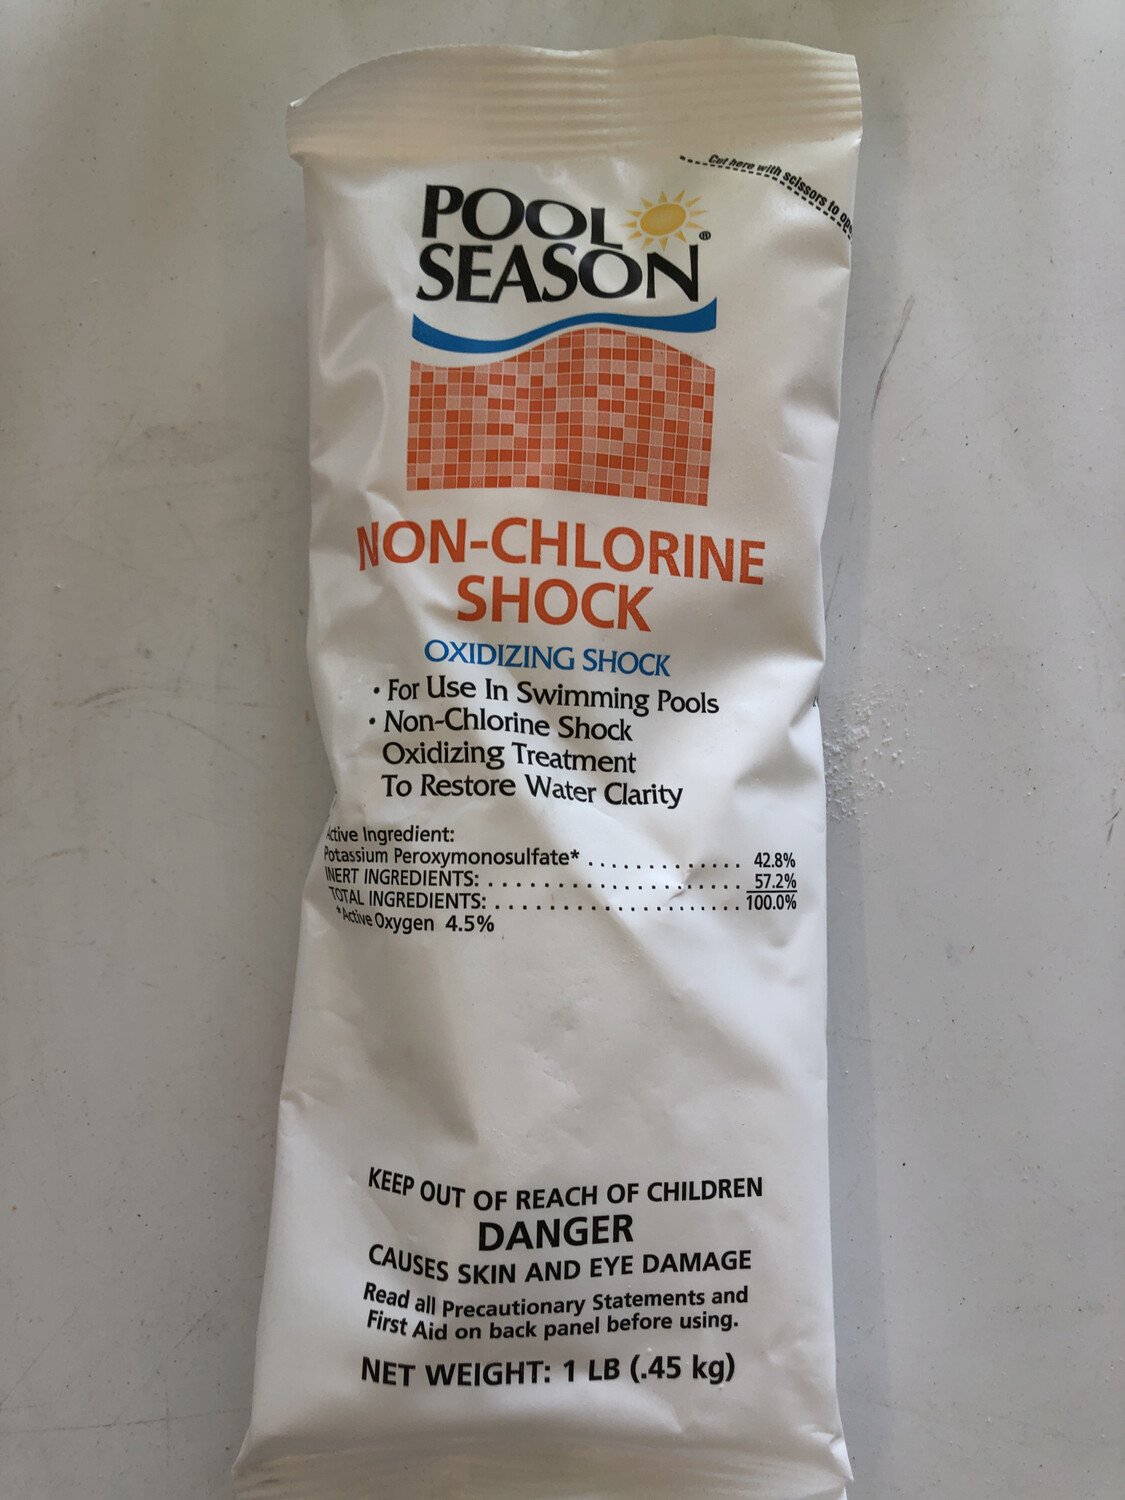 POOL SEASON NON-CHLORINE SHOCK 1LB